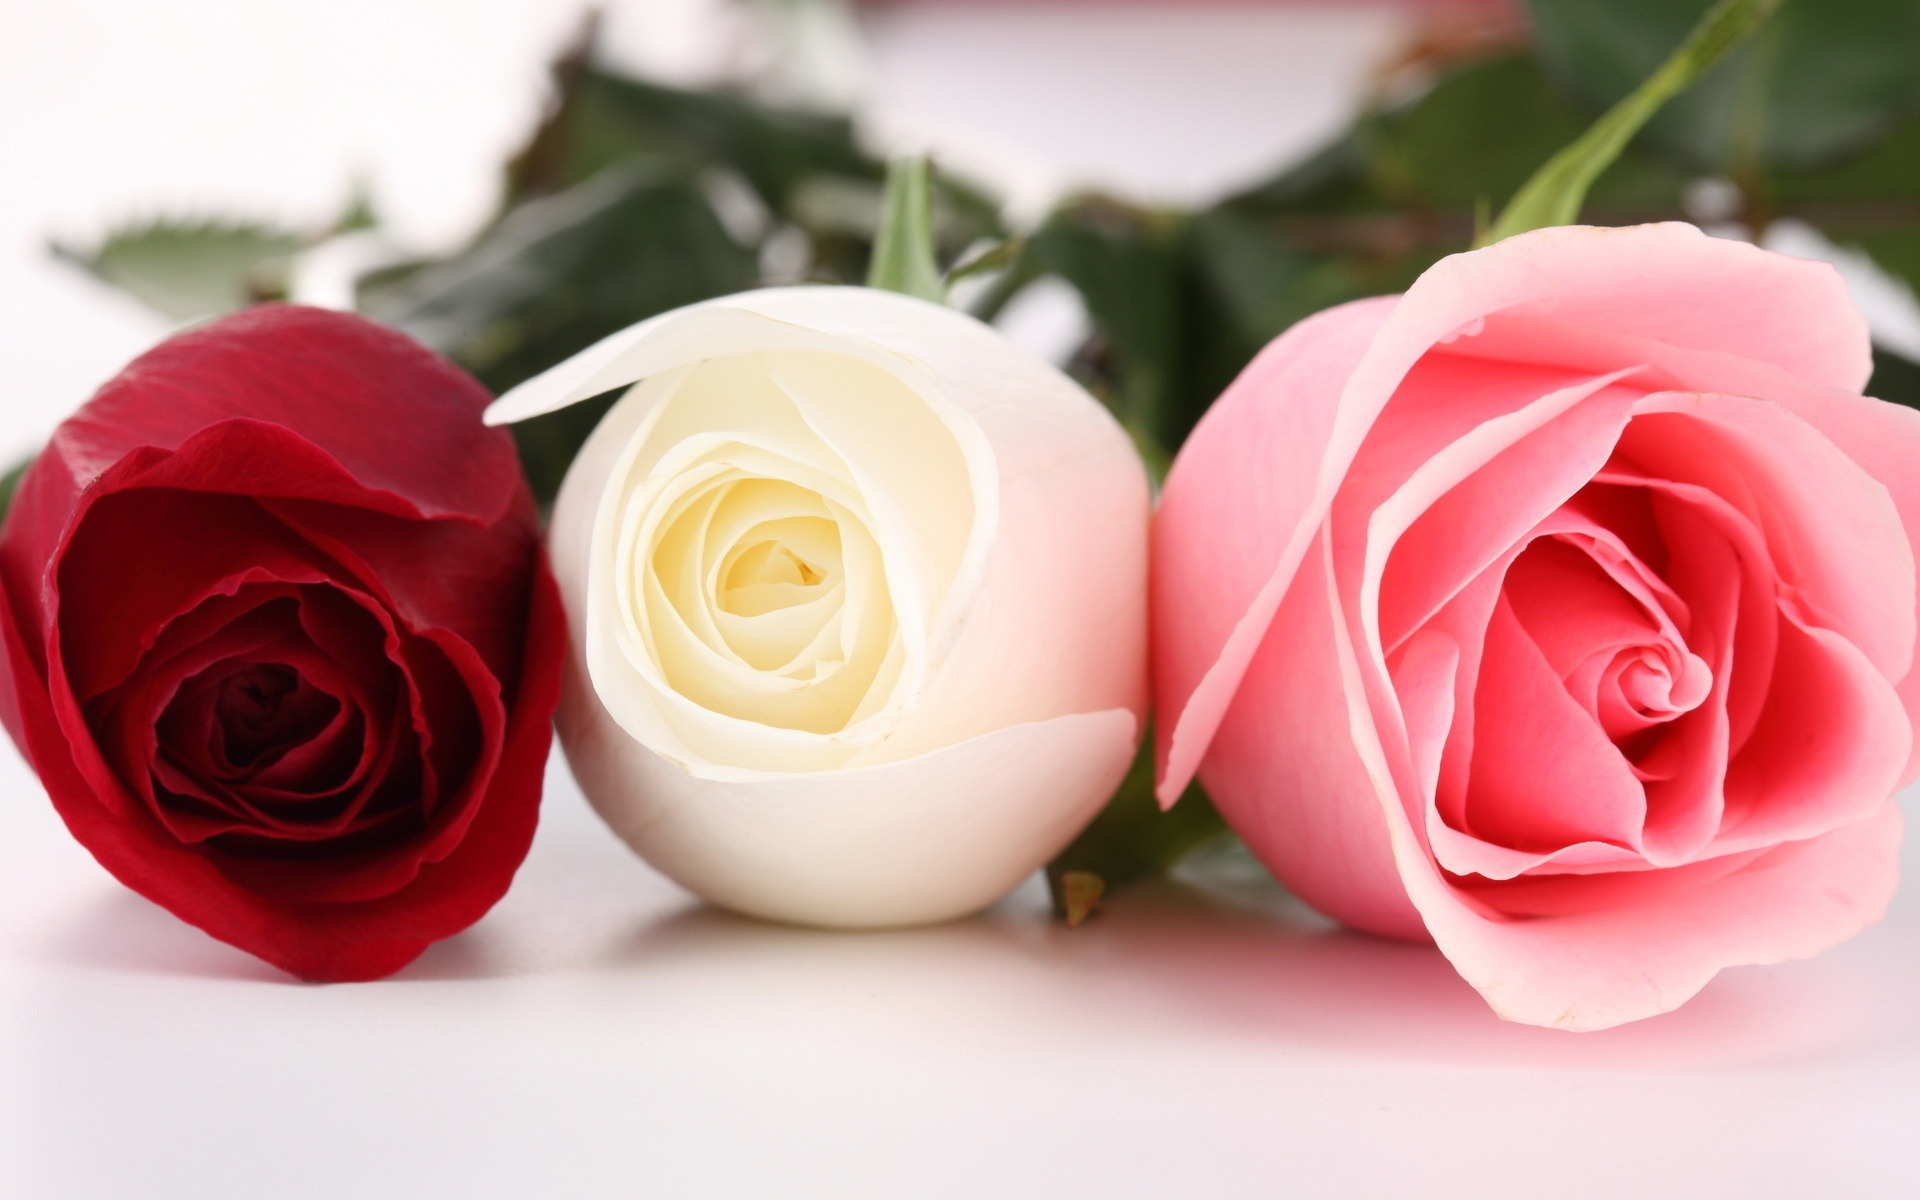 Roses photo wallpaper high definition high quality widescreen roses photo wallpaper roses photo mightylinksfo